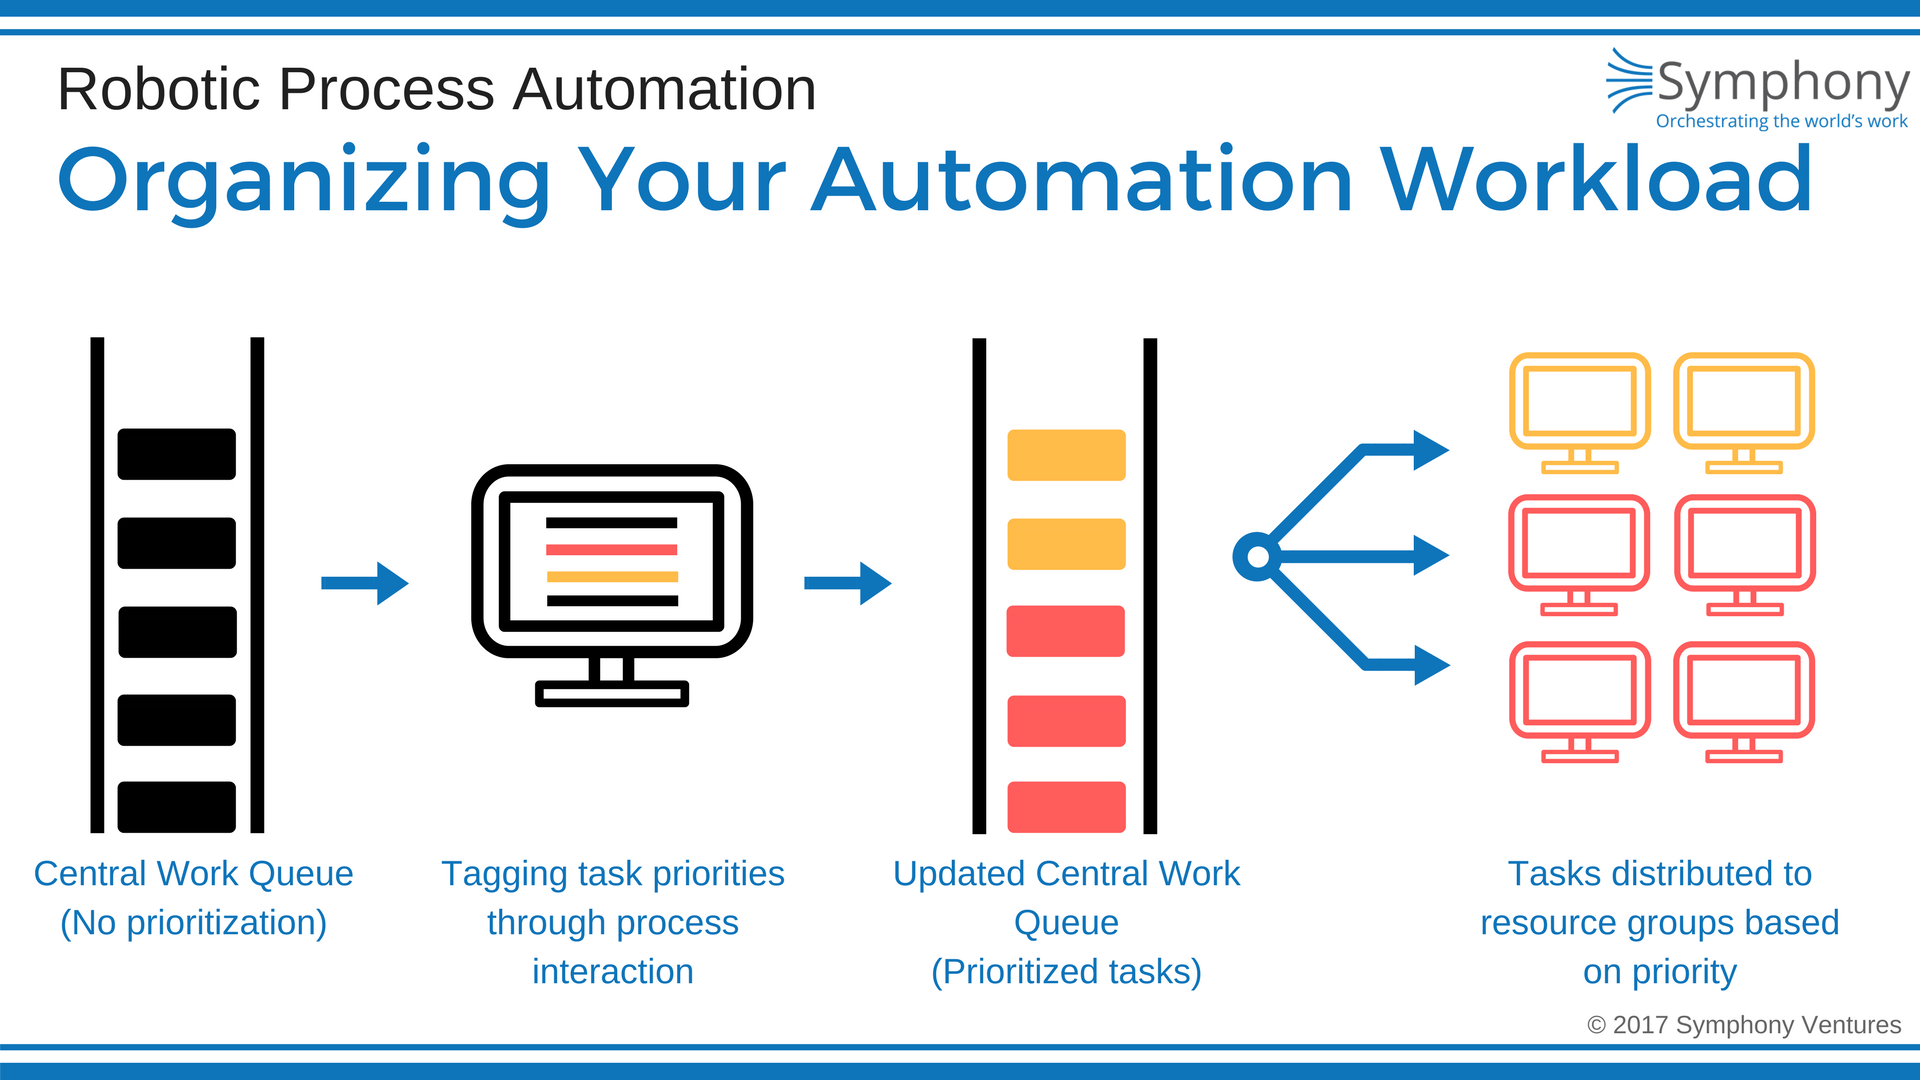 How an RPA workload is distributed